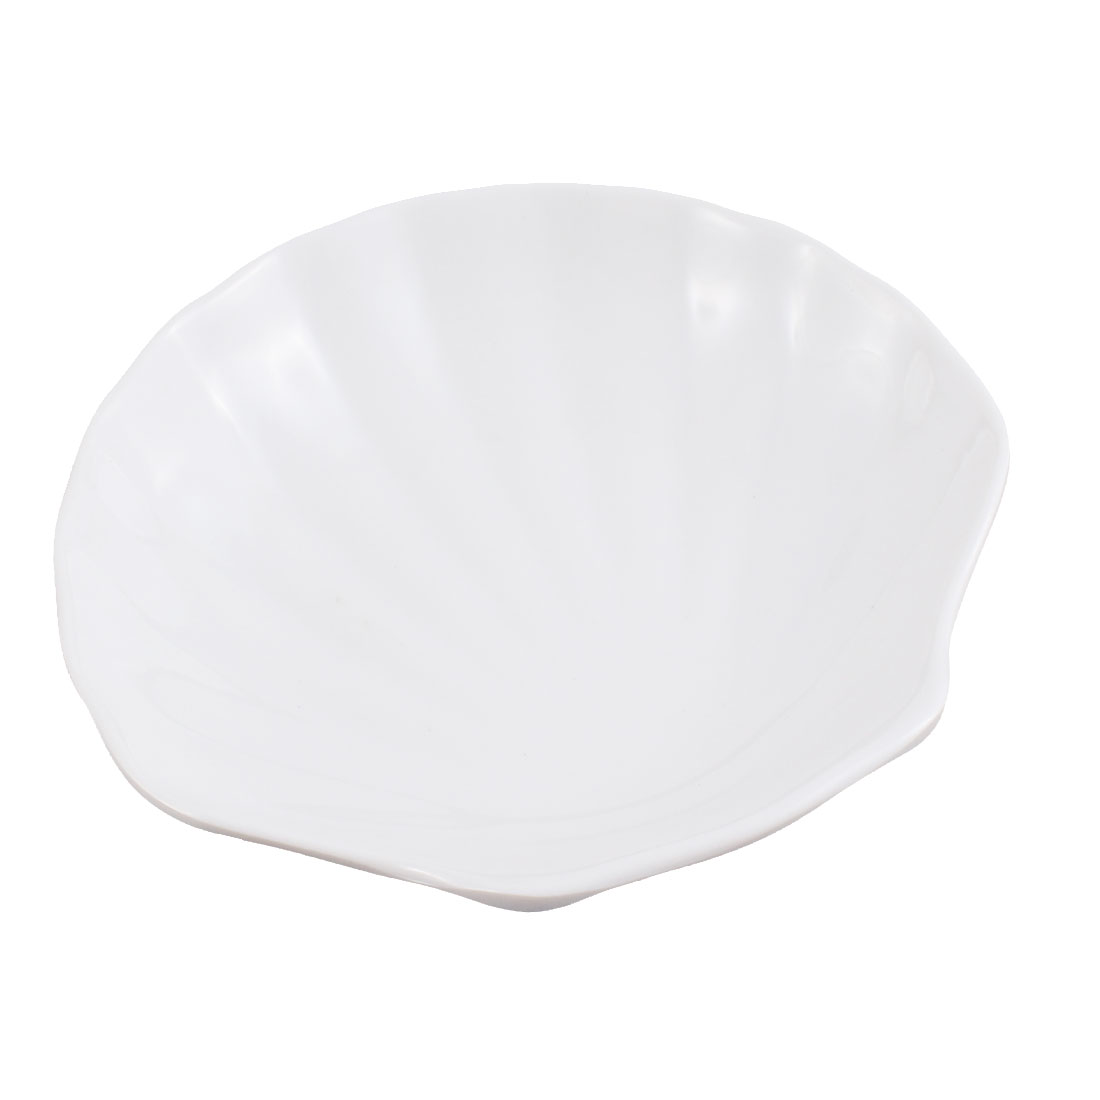 Seashell Design Soy Sauce Dipping Mini Dish Plate 5.5 Inch Length White